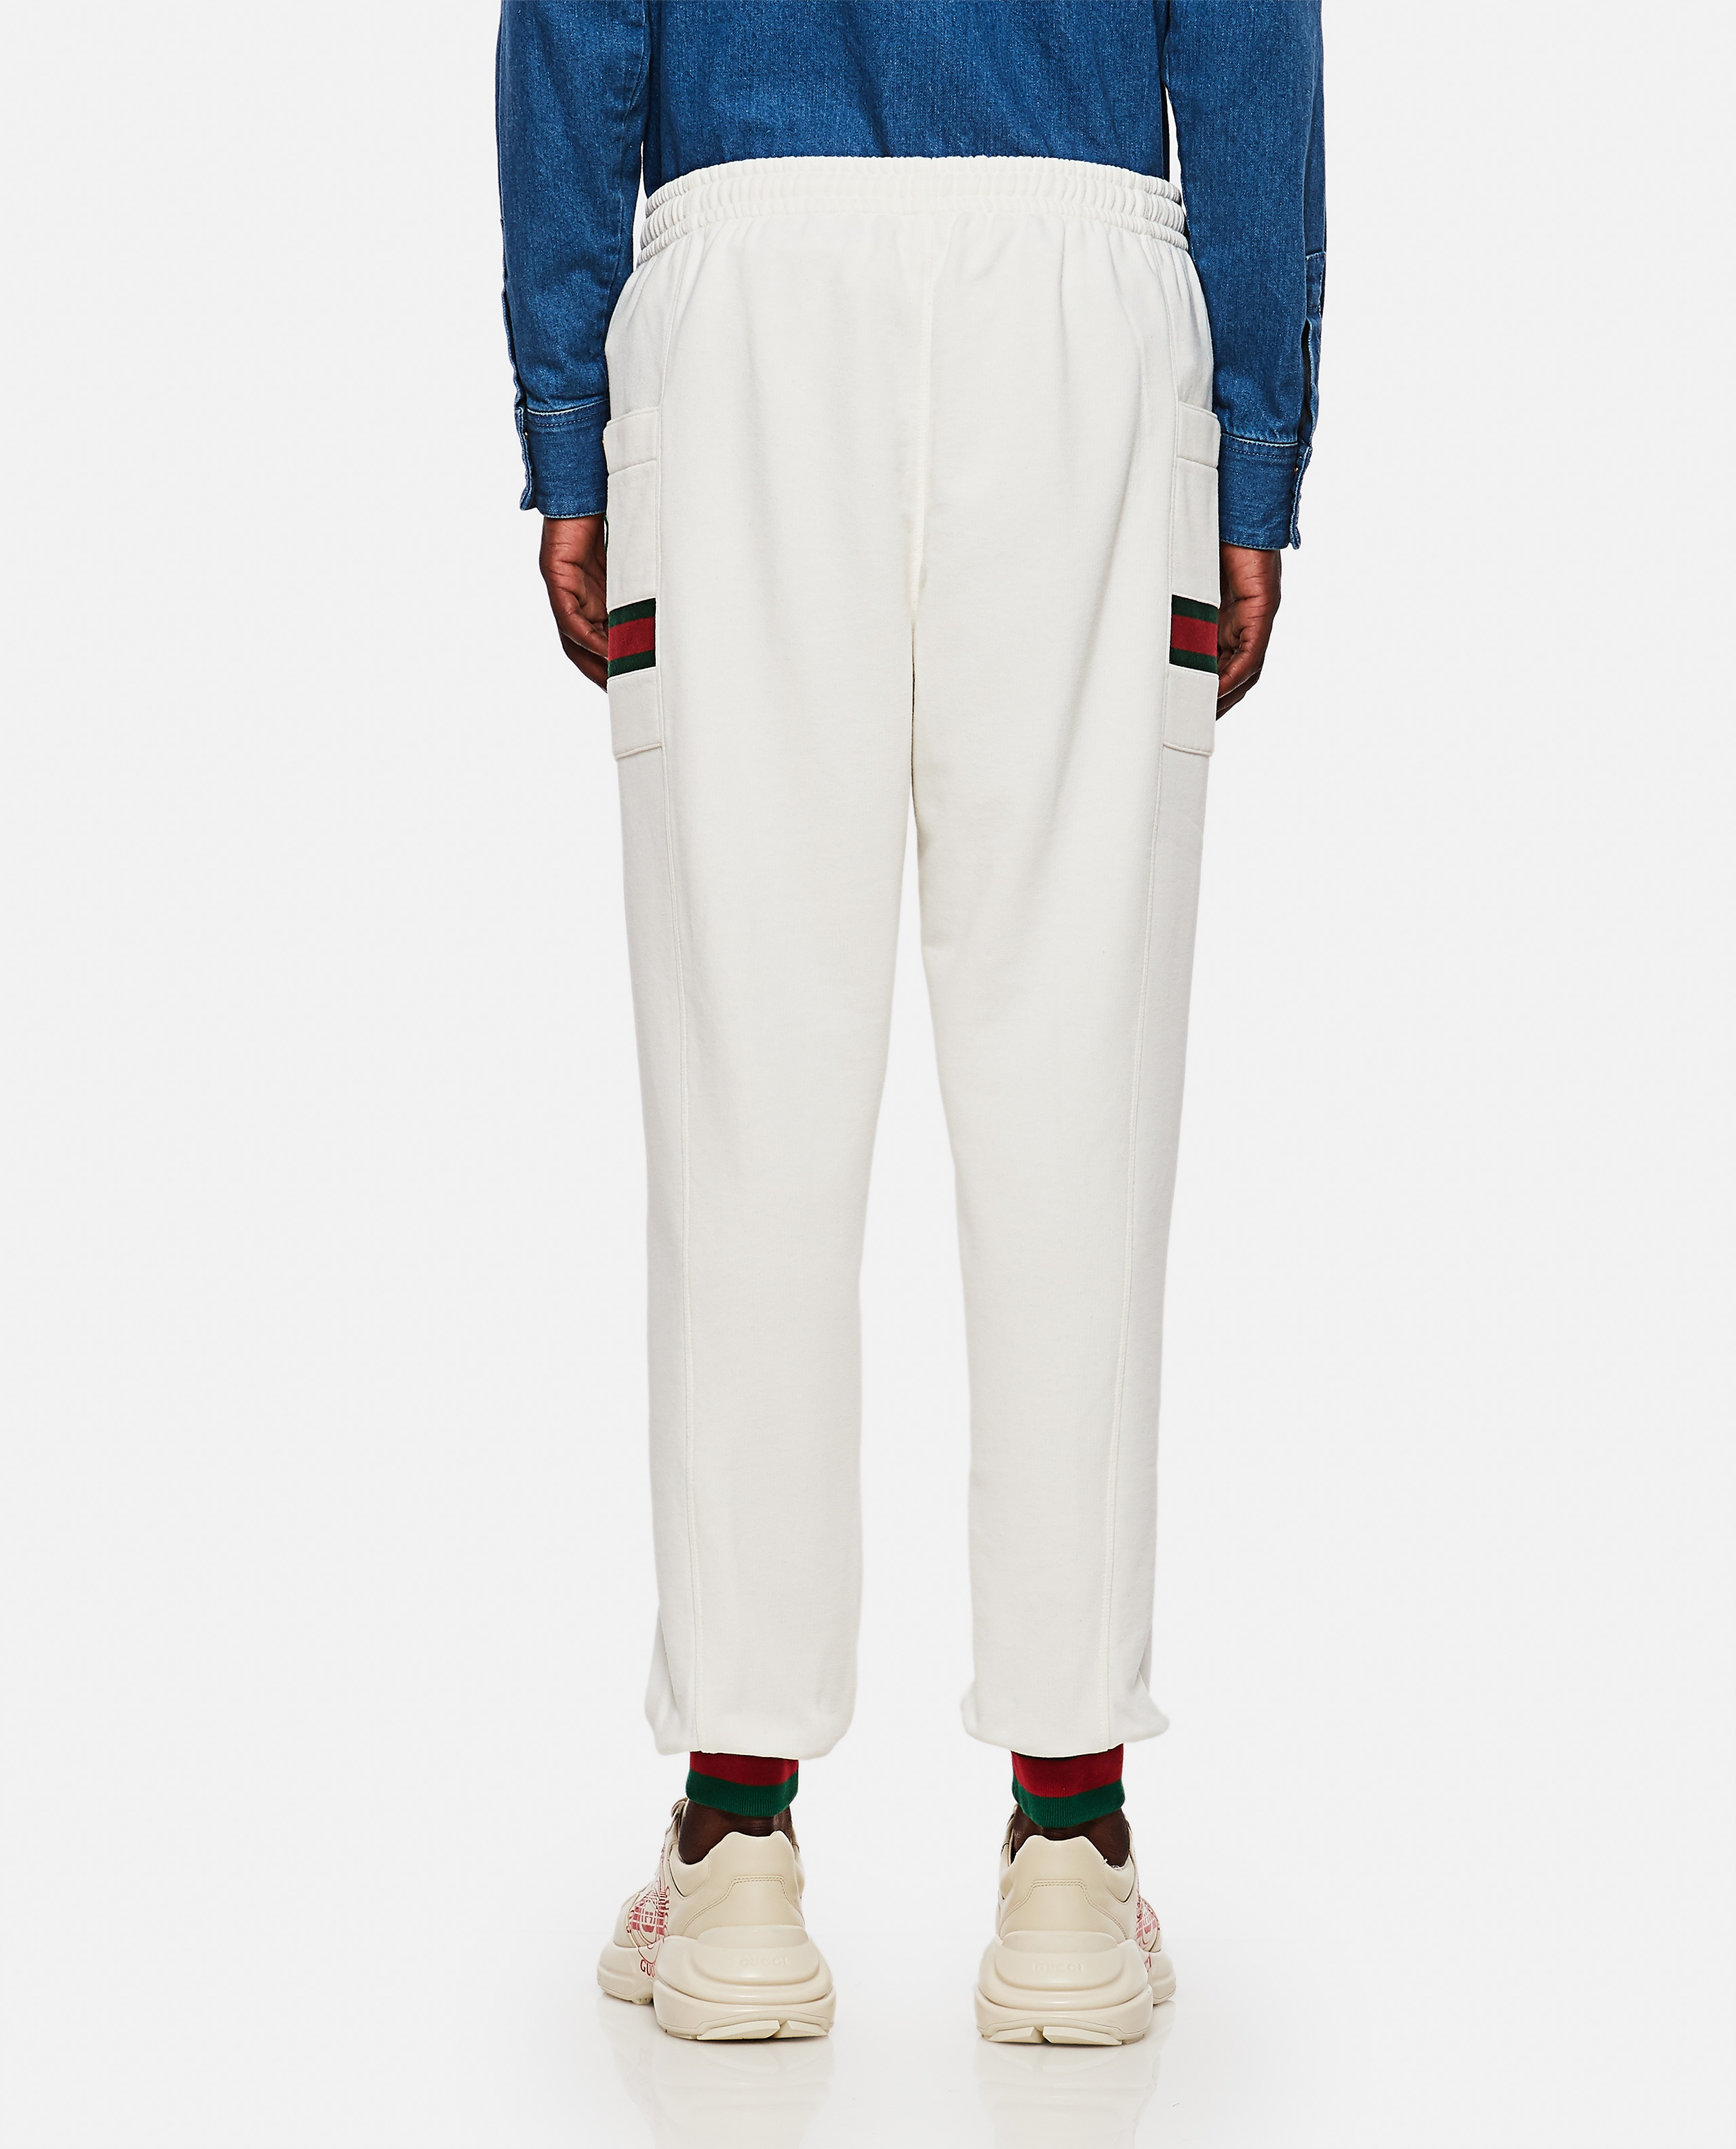 Jersey jogging trousers with Web ribbon Men Gucci 000267660039487 3